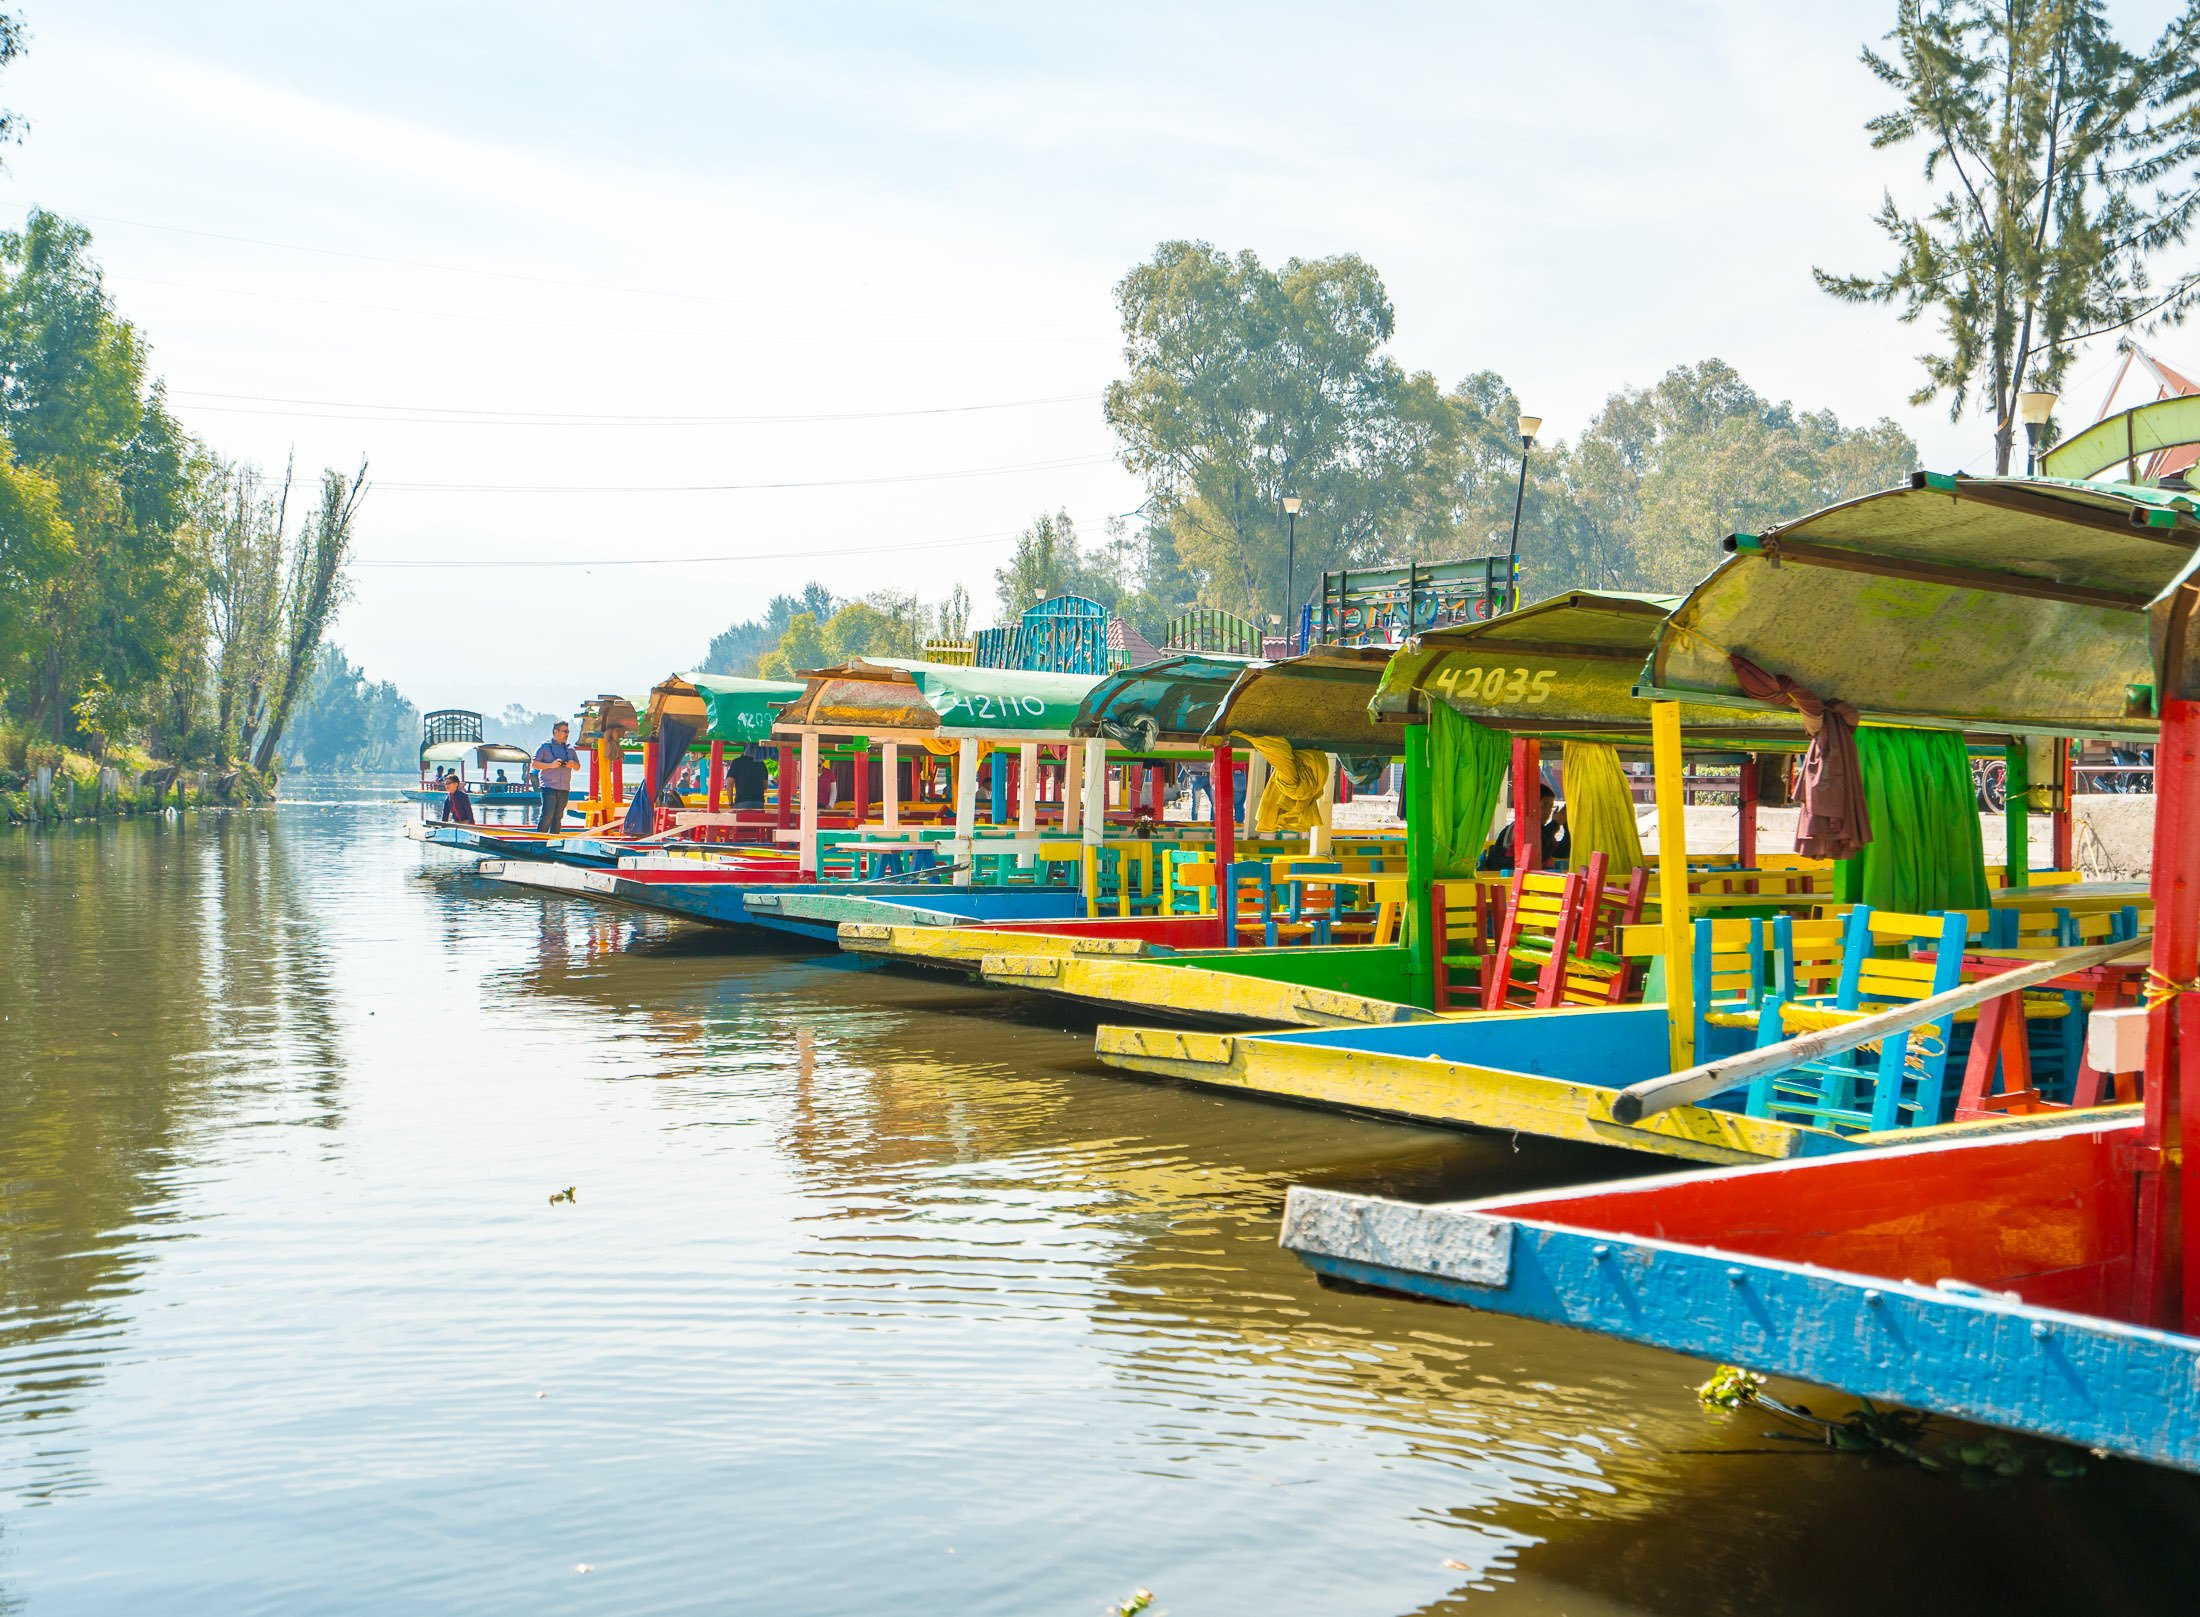 Xochimilco is a remnant of Lake Texcoco and Aztec civilization in Mexico City.